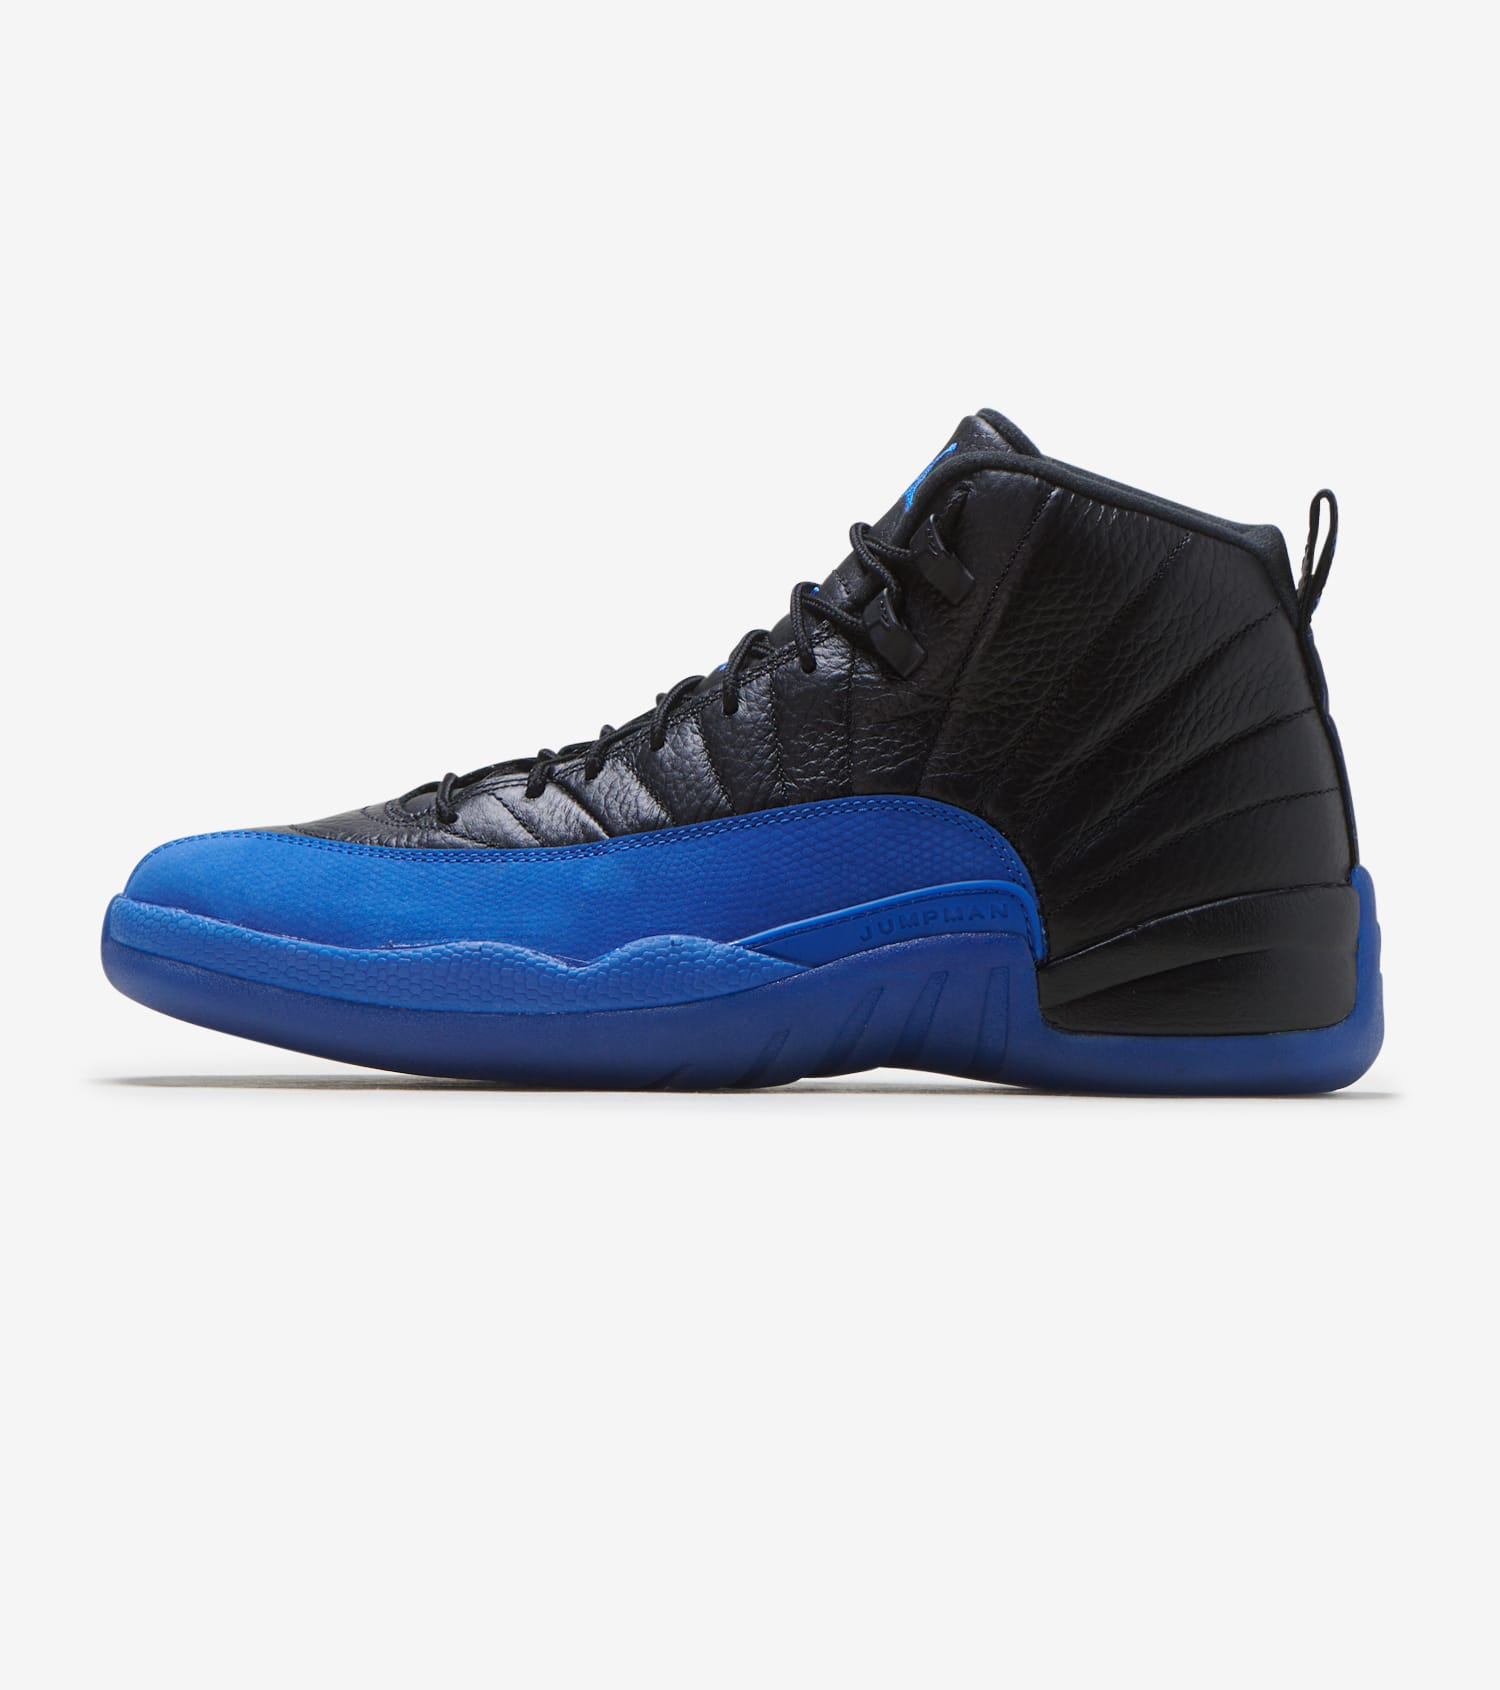 wholesale dealer 52d22 b5255 Air Jordan Retro 12